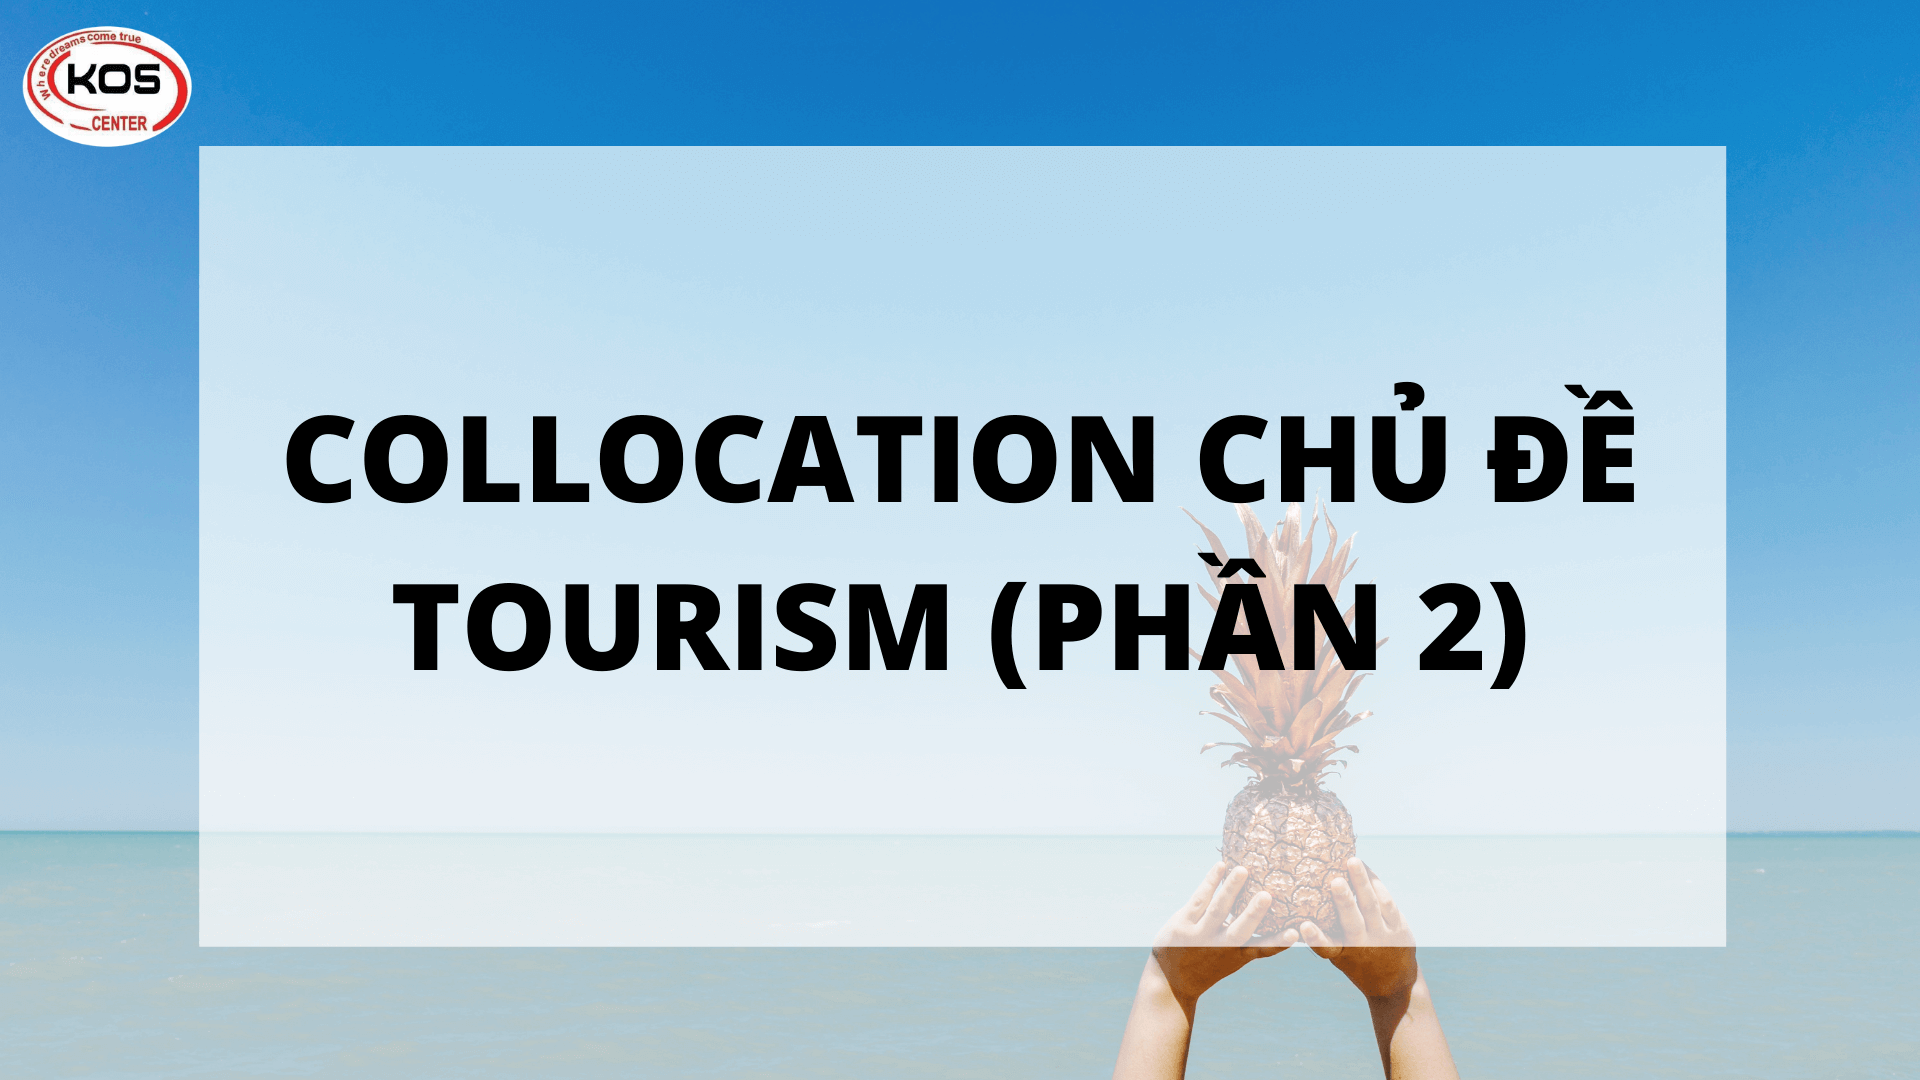 Collocation chủ đề Tourism